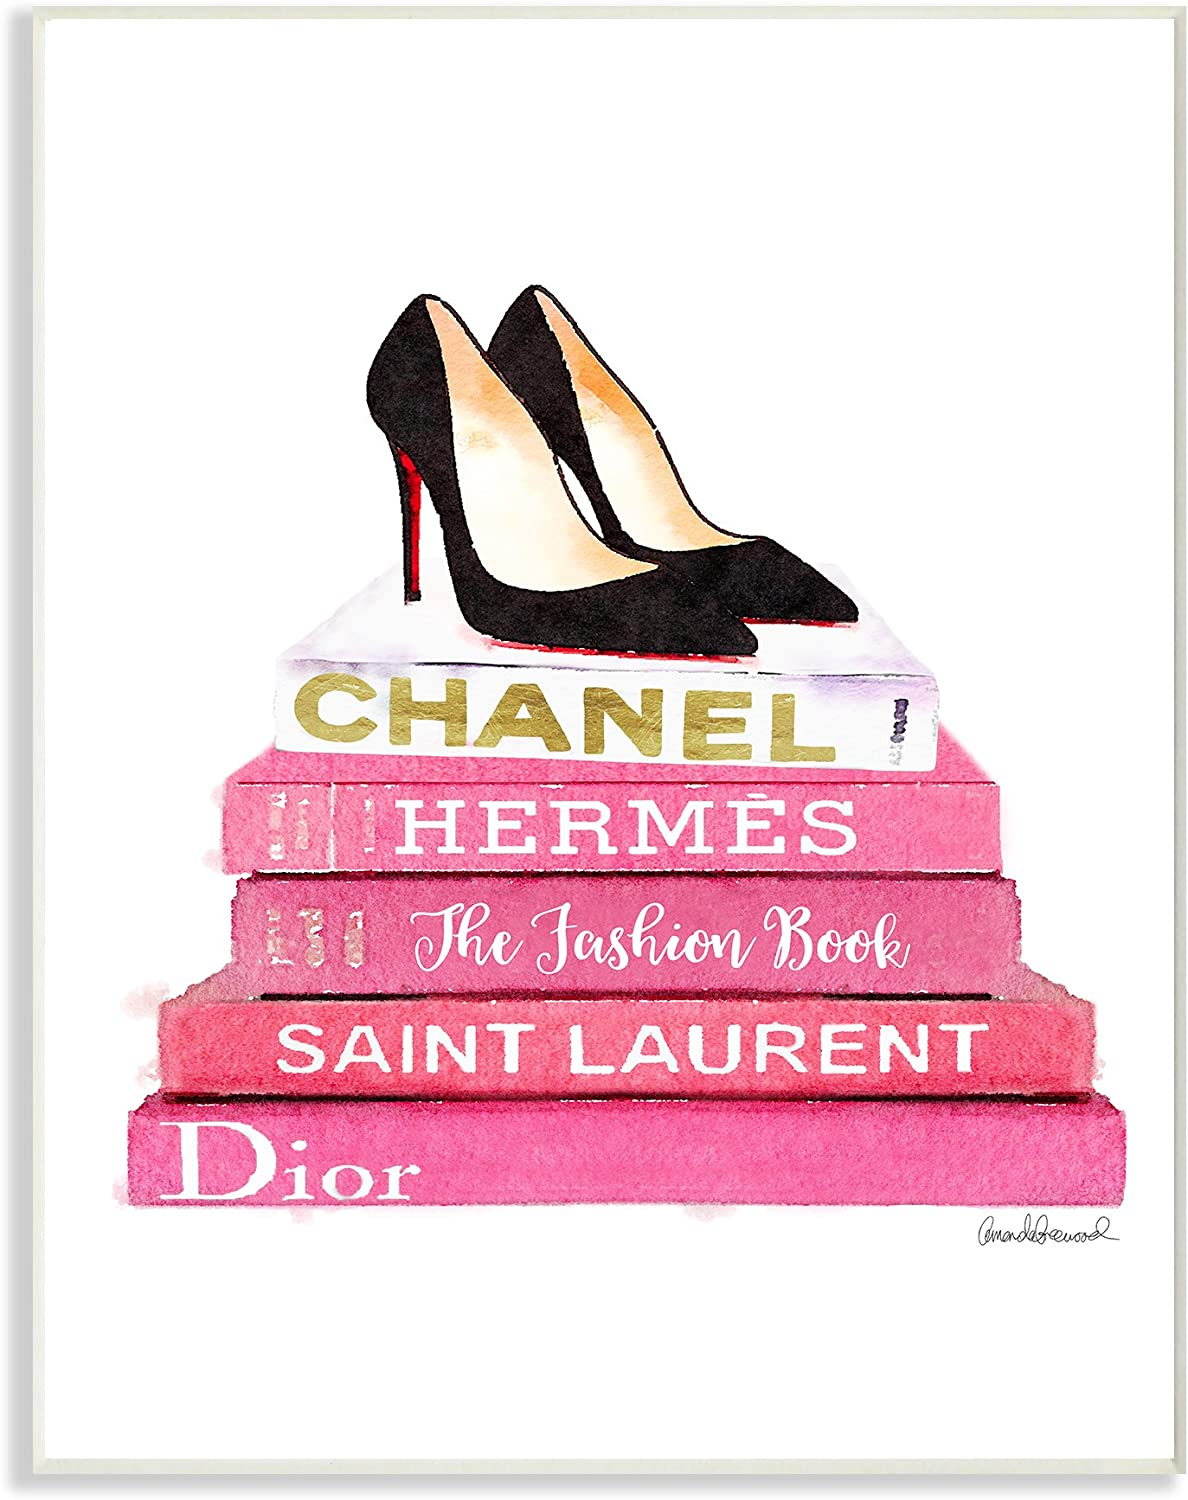 Stupell Industries Glam Pink Fashion Books Black Pump Hells Oversized Wall Plaque Art, Proudly Made in USA